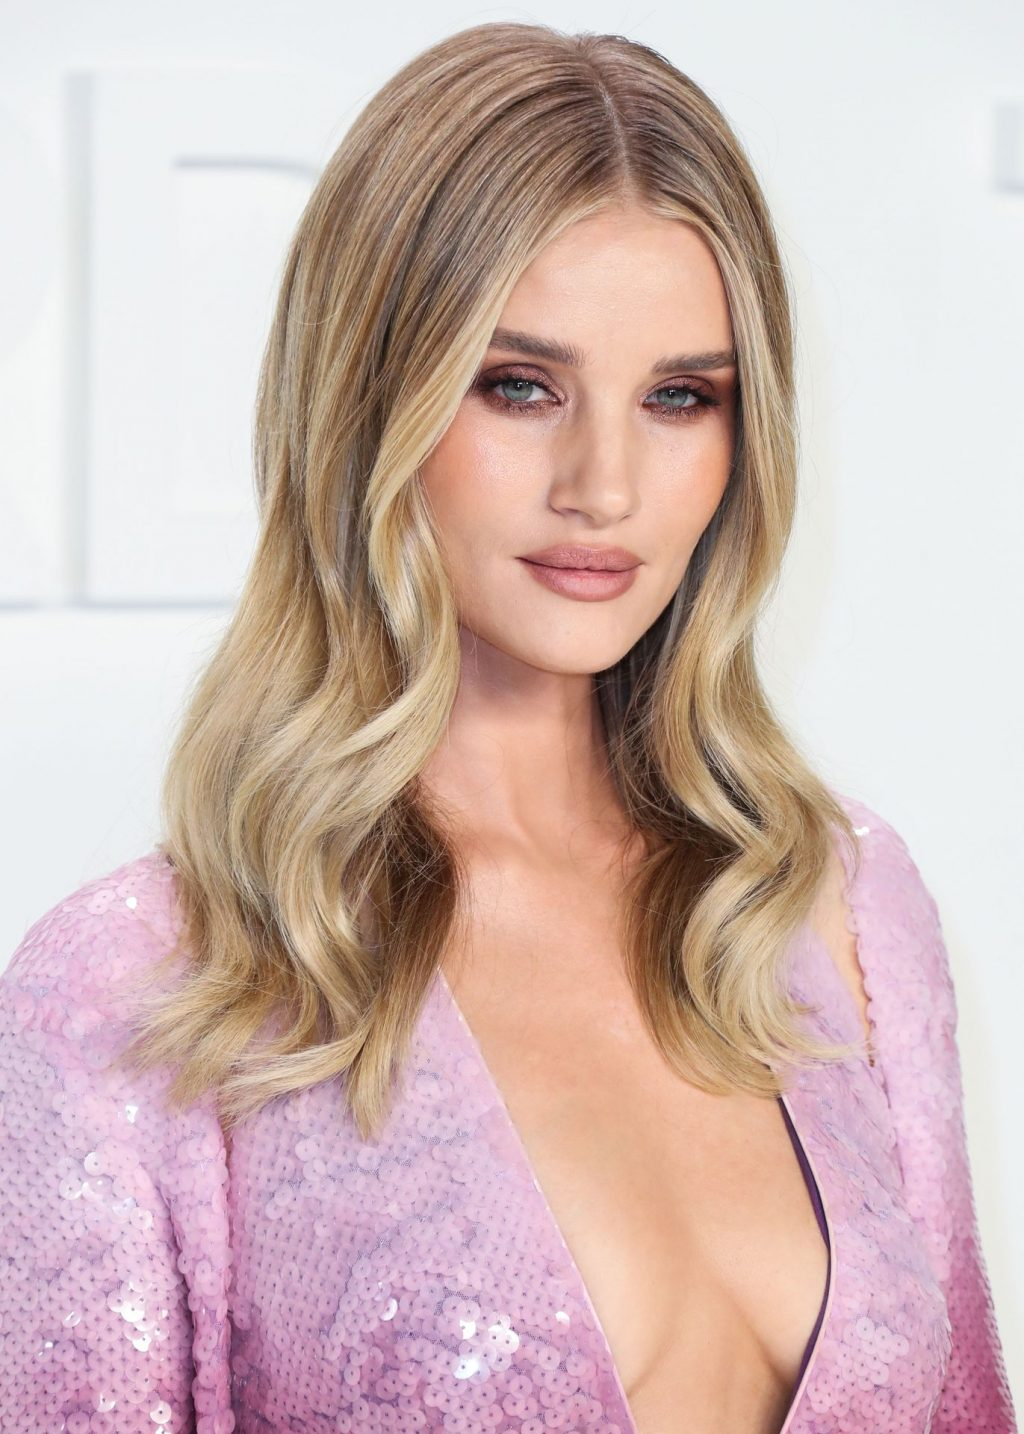 Rosie Huntington Whiteley Sexy The Fappening Blog 108 1024x1434 - Rosie Huntington-Whiteley Shows Her Cleavage at the Tom Ford Fashion Show (115 Photos)